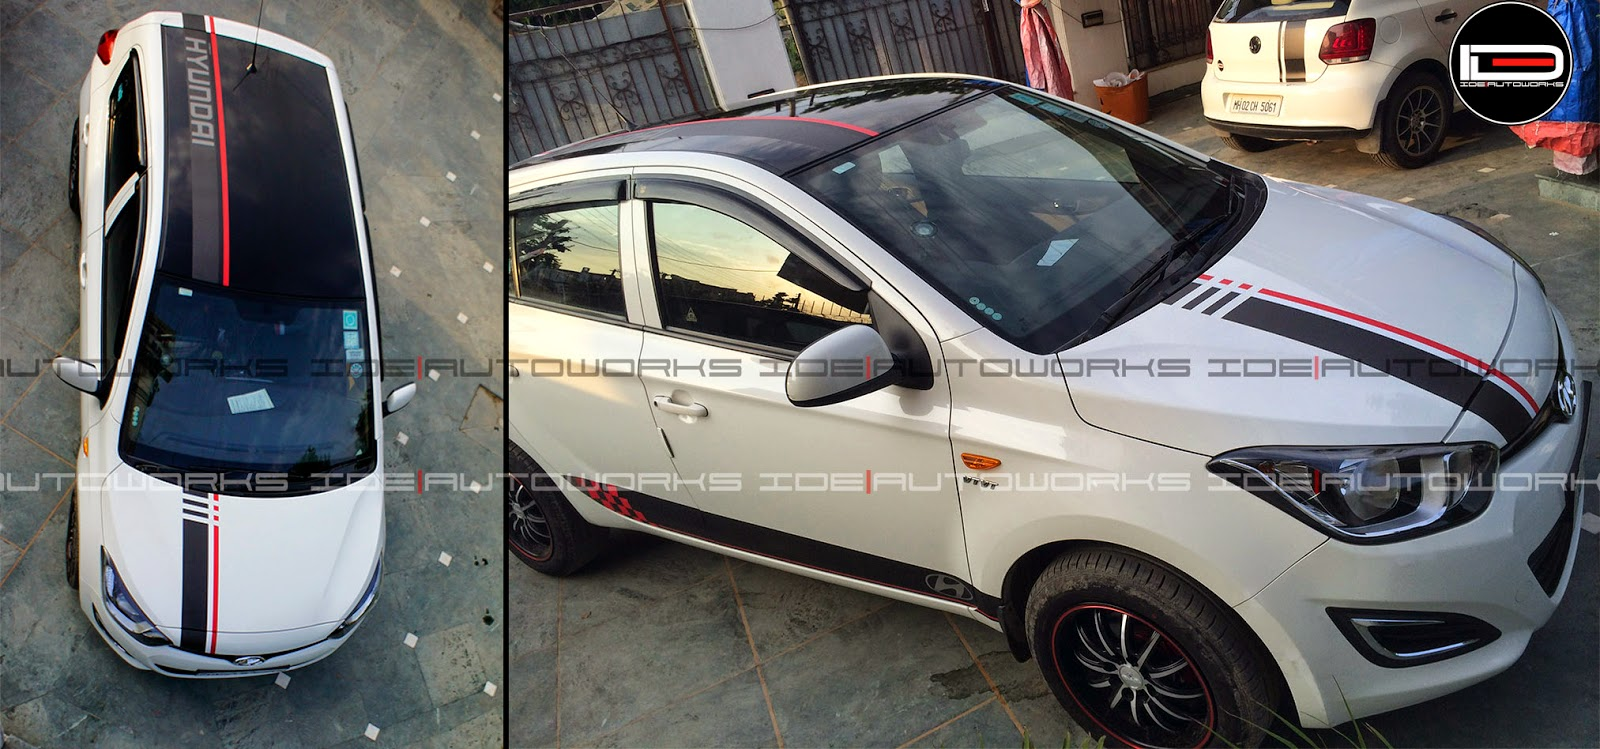 Hyundai i20 with racing stripes ideautoworks racing stripes ide autoworks pinterest racing stripes